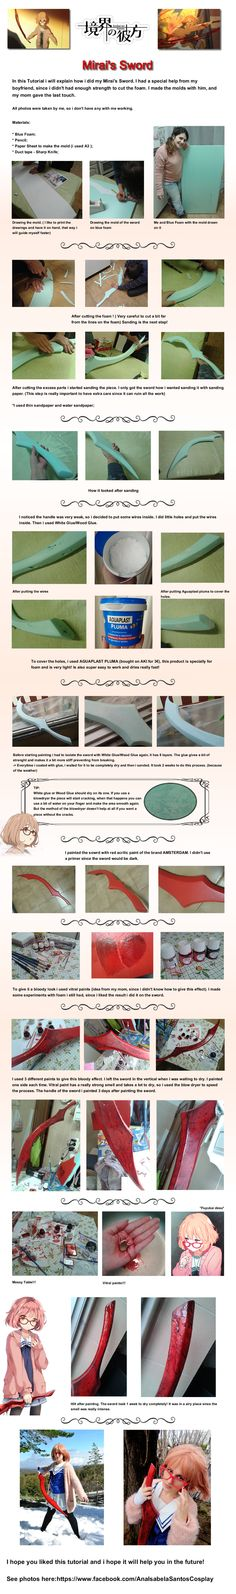 Tutorial Mirai Sword EN by AnaIsabelaSantos